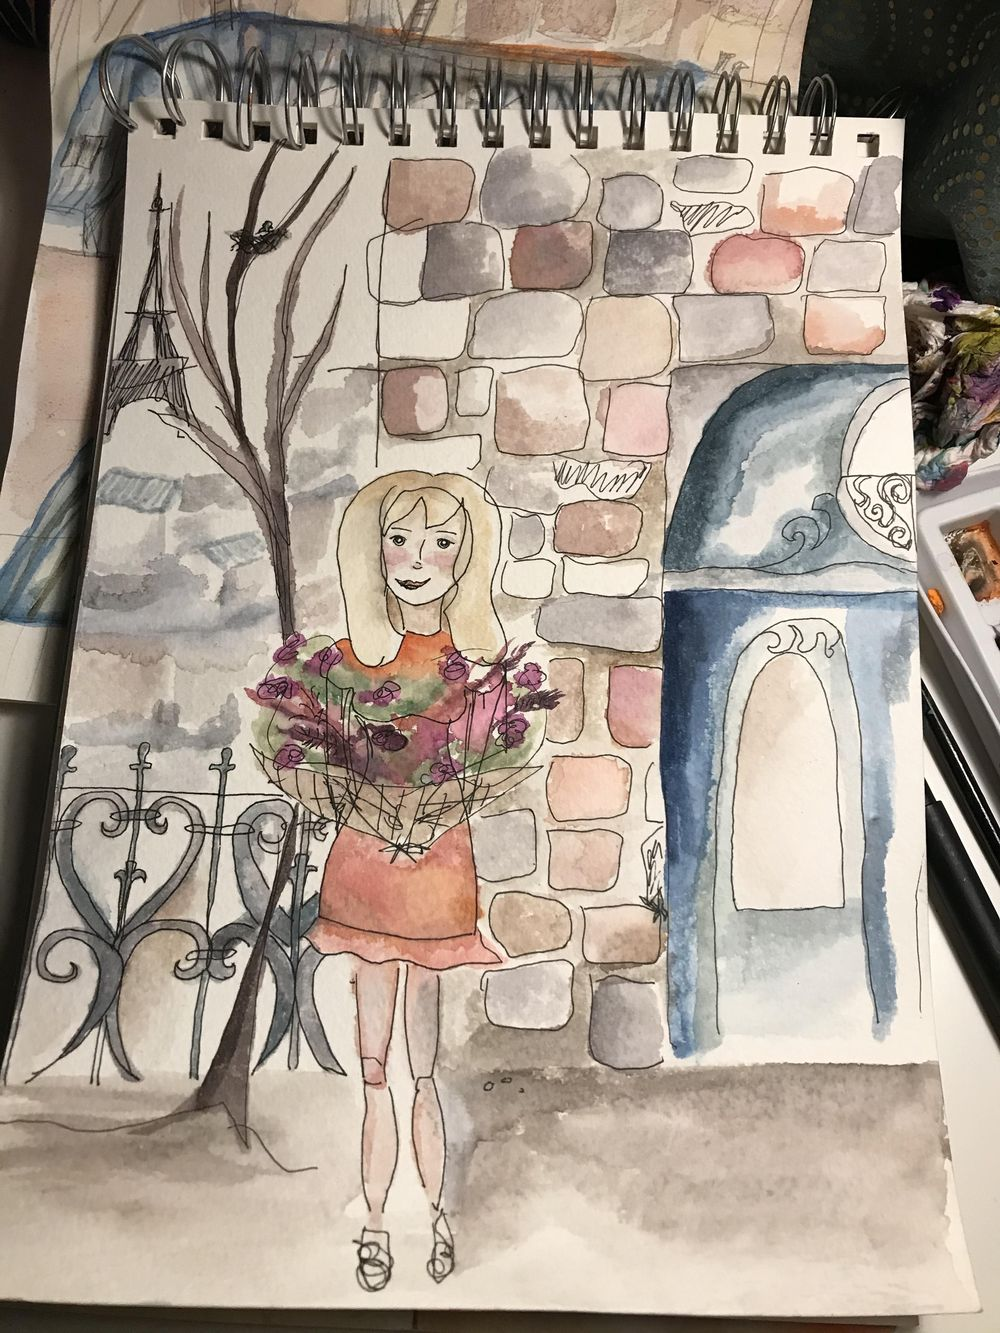 self discovery illustrations - image 1 - student project